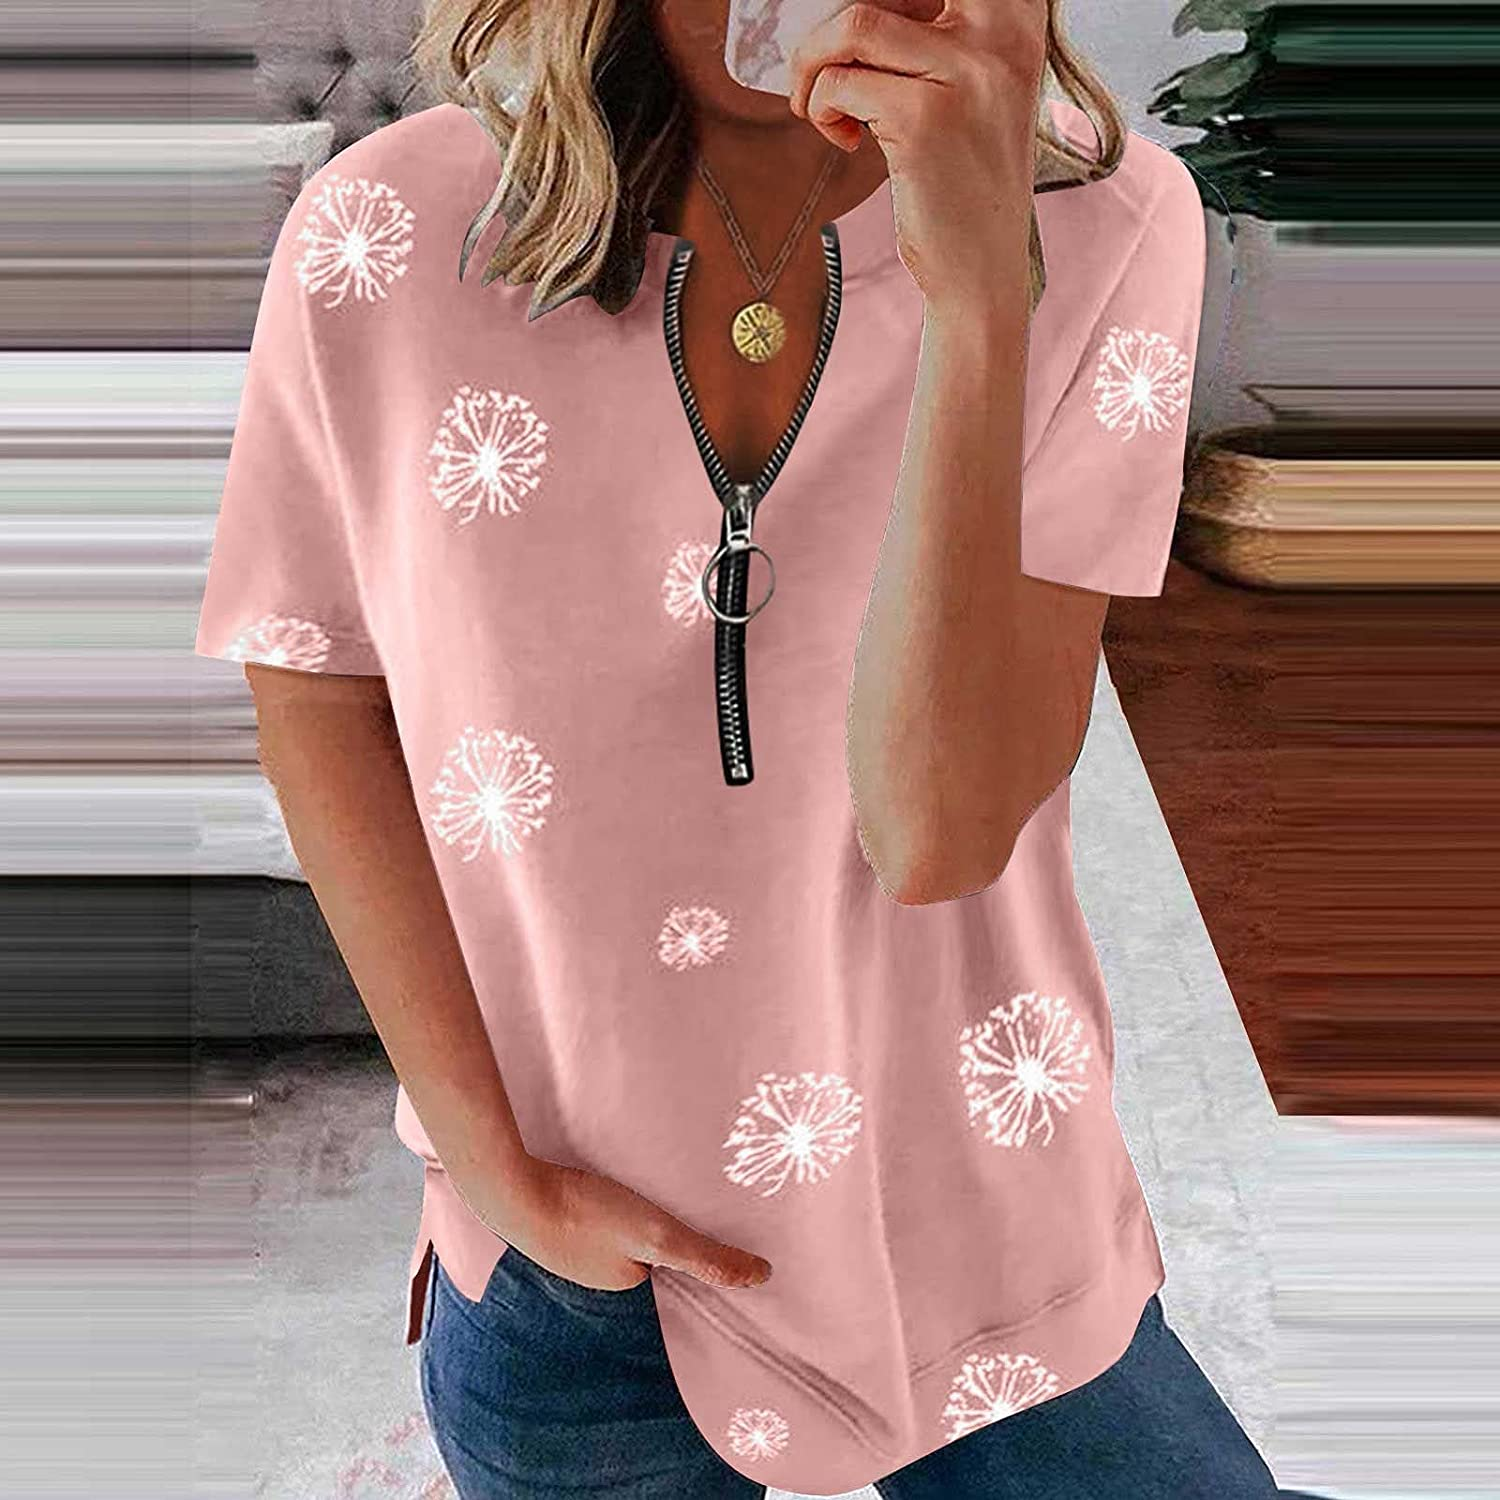 Summer T-Shirts for Women Short Sleeve Summer Tops Zipper Casual Blouses Floral Printing Comfy Pullover Shirts Tunics